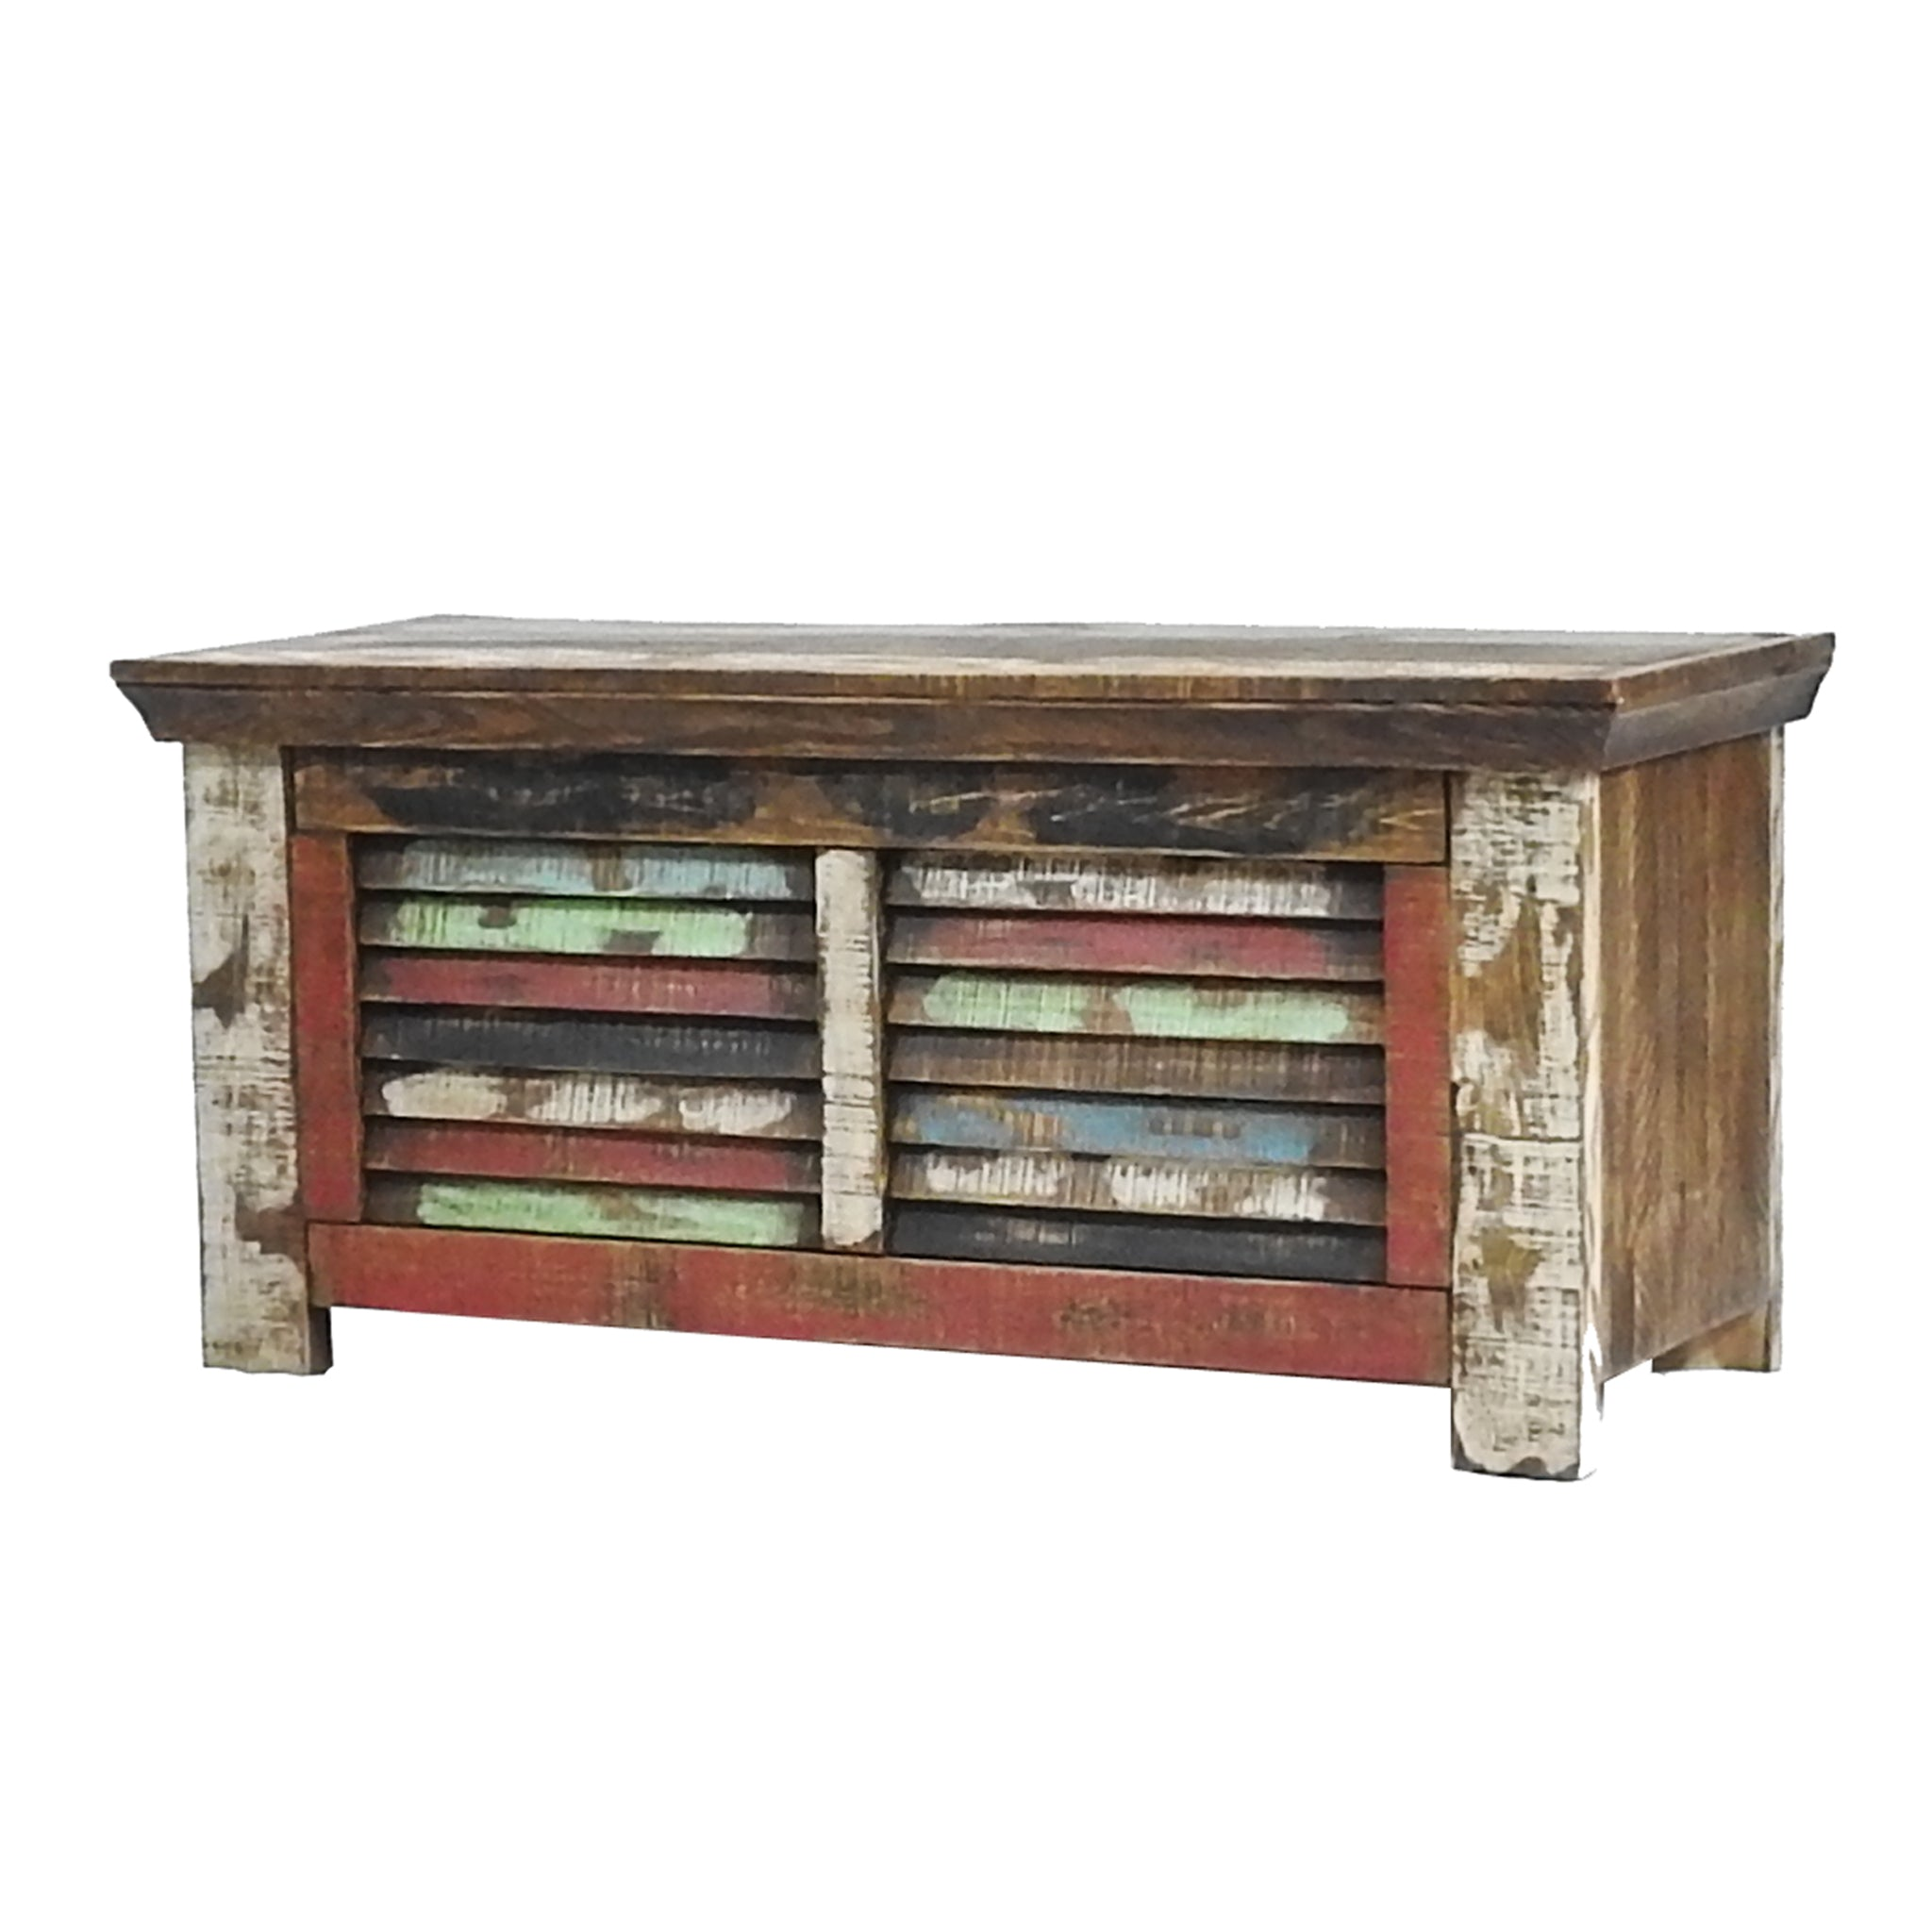 ed7f2d4633 Rustics For Less - Rustic Furniture and More – Rustics for Less